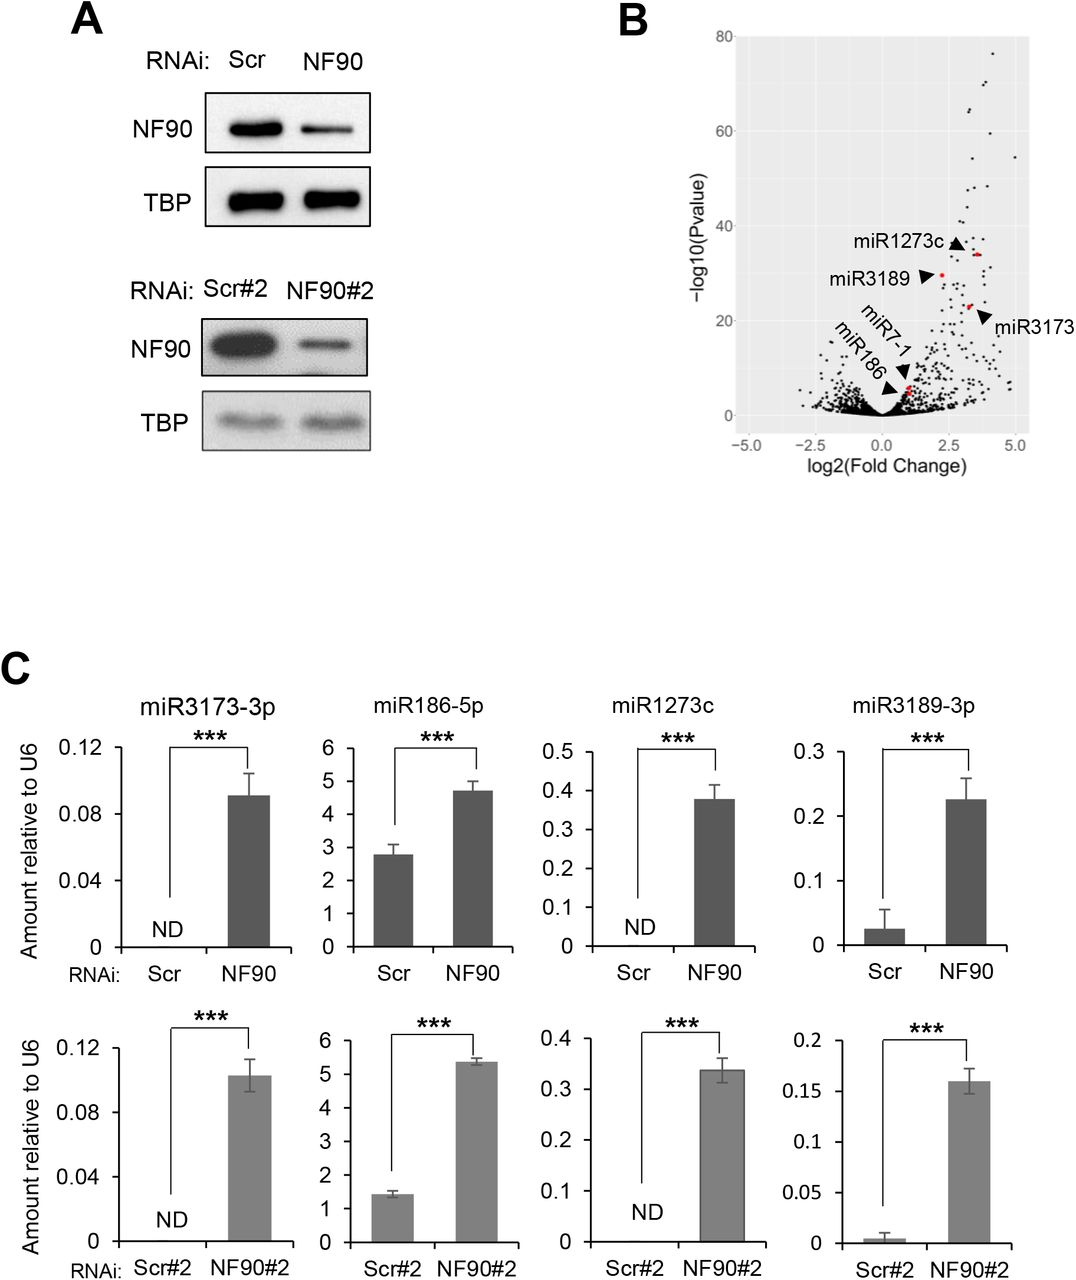 "NF90 Modulates the Expression Level of a subset of miRNAs in HepG2 cells. (A) Extracts of HepG2 cells transfected with non-targeting control siRNAs (Scr, Scr#2) or siRNA targeting NF90 (NF90, NF90#2) as indicated were analyzed by immunoblot using the antibodies indicated. (B) Total RNA extracted from cells transfected with siScr or siNF90 were analyzed by small RNA-seq. Results are shown as log2 fold change versus –log10 p-value. (C) Total RNA extracted from cells described in (A) were analyzed by Taqman RT-qPCR as indicated. Results were normalized by those obtained for U6 abundance in the same samples. ND indicates ""not detected"". Data represent mean ± SEM obtained from 3 independent experiments (*** P"